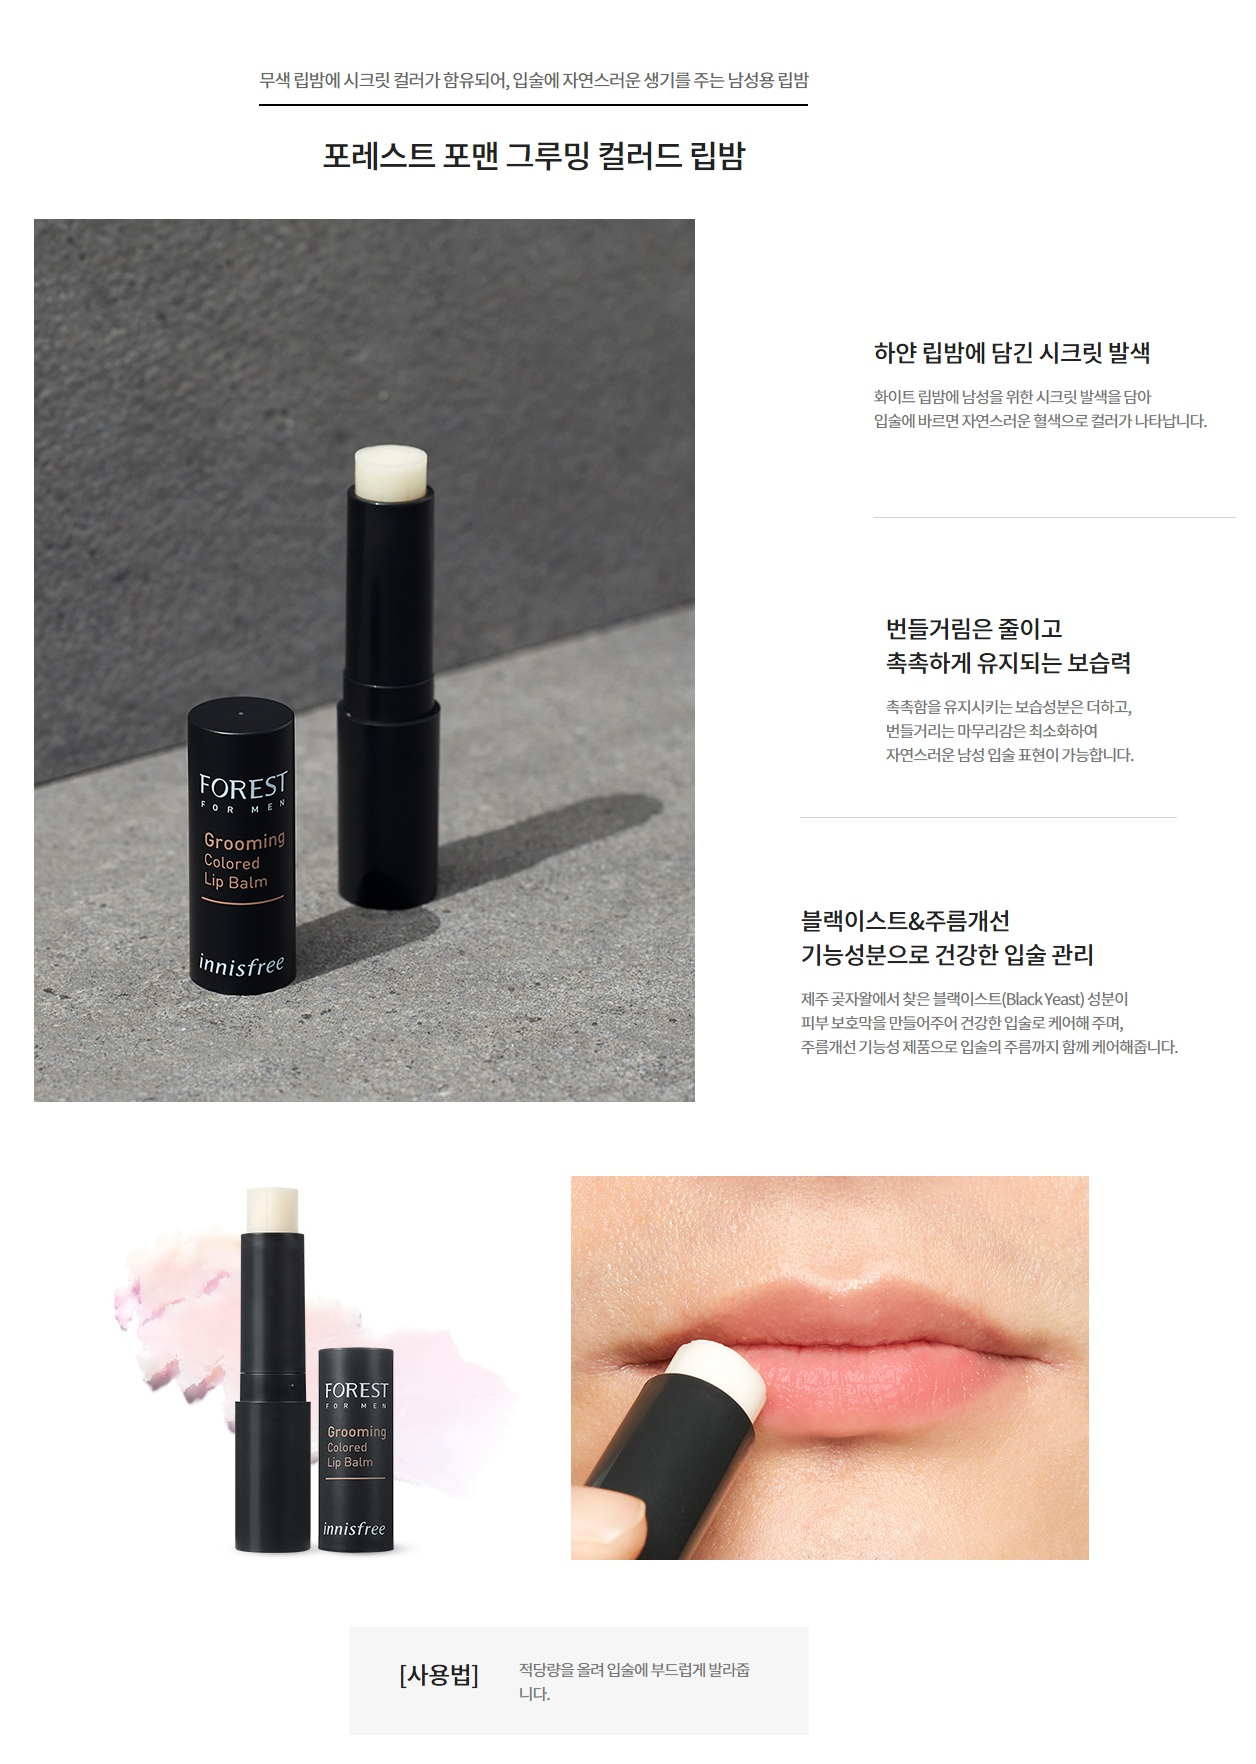 Innisfree Forest for Men Grooming Colored Lip Balm korean men skincare product online shop malaysia singapore macau